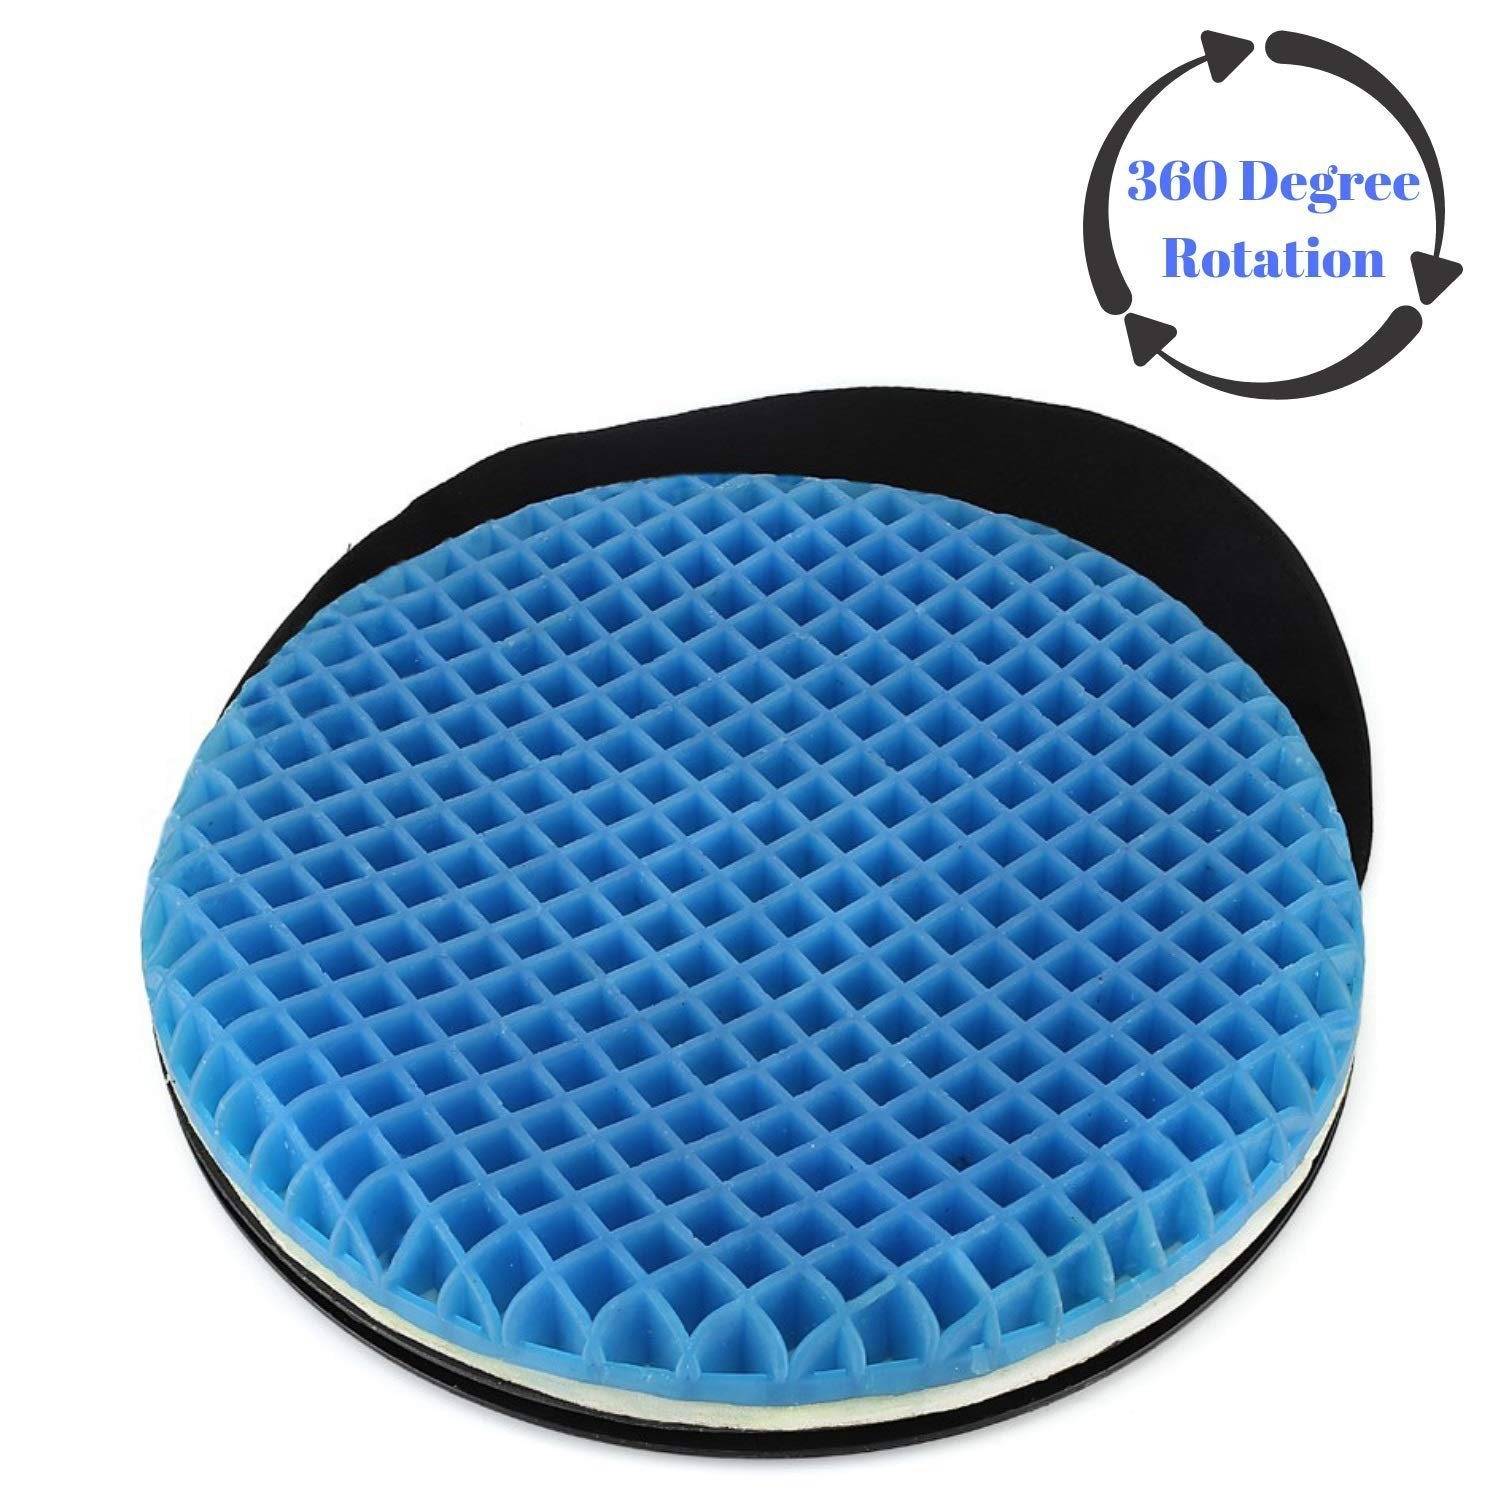 FOMI Swivel Gel Seat Cushion | 360 Degree Rotation | Thick Disc Pad for Home or Office Chair, Wheelchair | Pressure Sore Relief, Prevents Sweaty Bottom, Durable